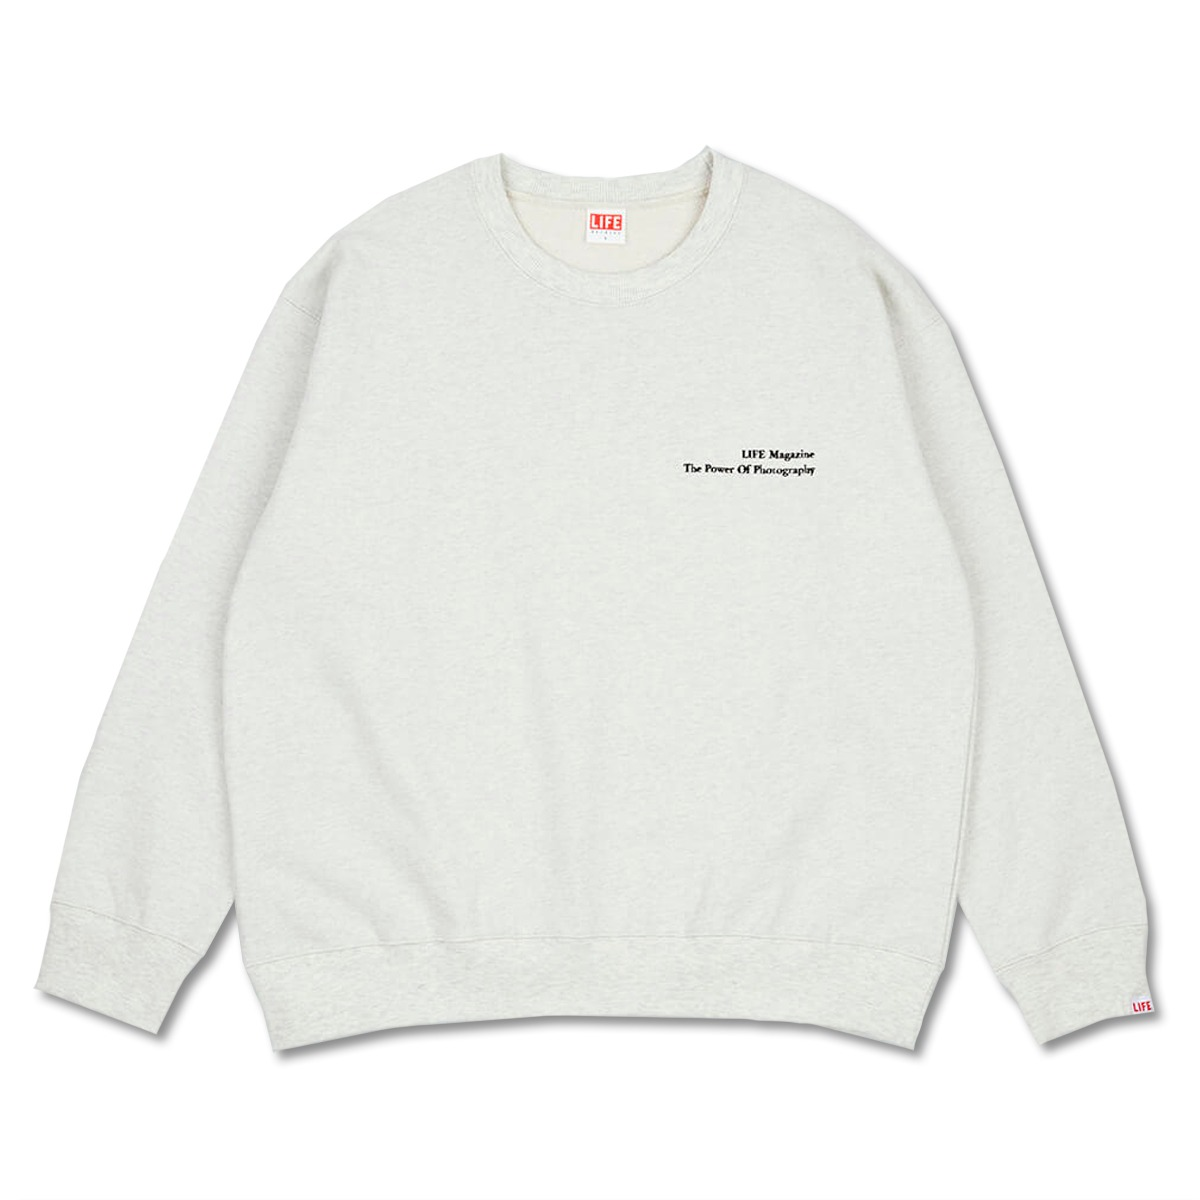 [LIFE ACHIVE] CLASSIC LETTERING SWEAT SHIRT 'OATMEAL'